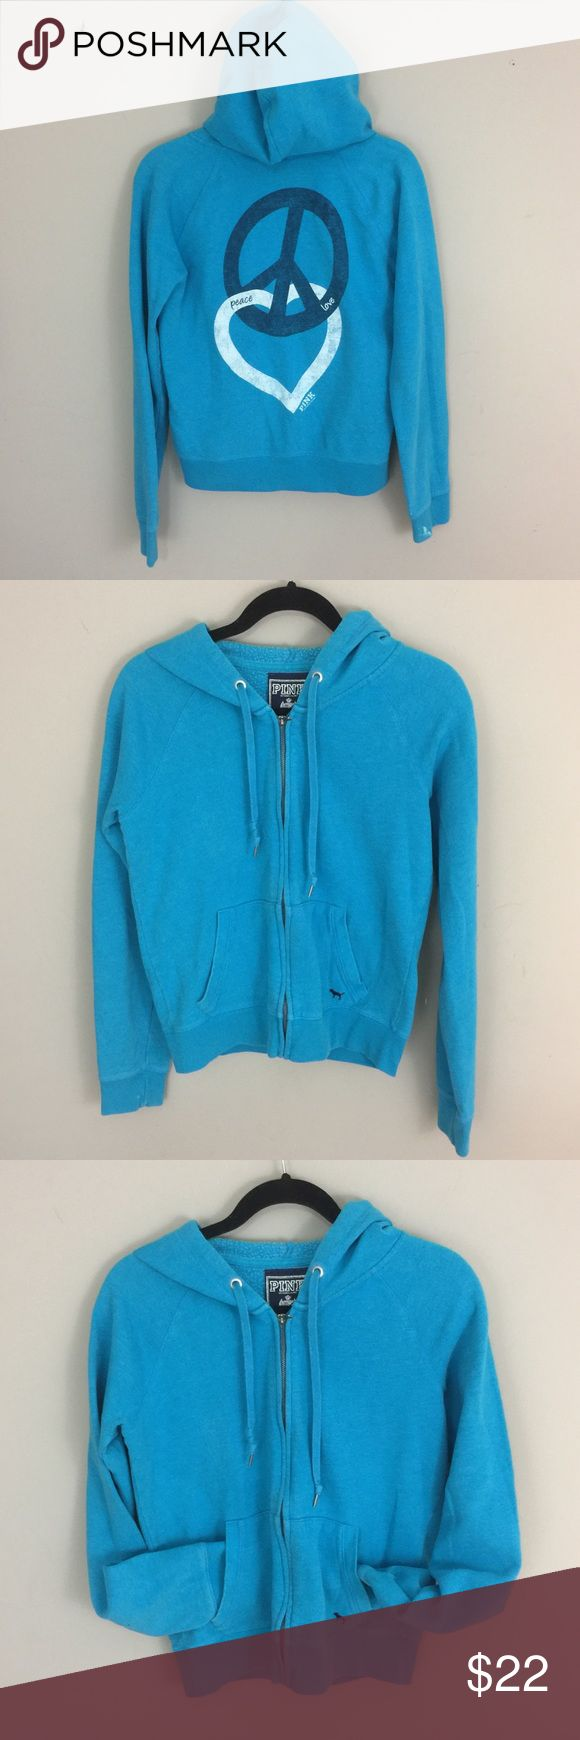 """VS Pink Zip Up Hoodie Peace Love Pink Blue Hoodie VS Pink Hoodie.  Blue zip up hoodie with """"Peace, Love Pink"""" on the back with a peace sign and a heart interlocking.  50% cotton, 50% polyester. PINK Tops Sweatshirts & Hoodies"""